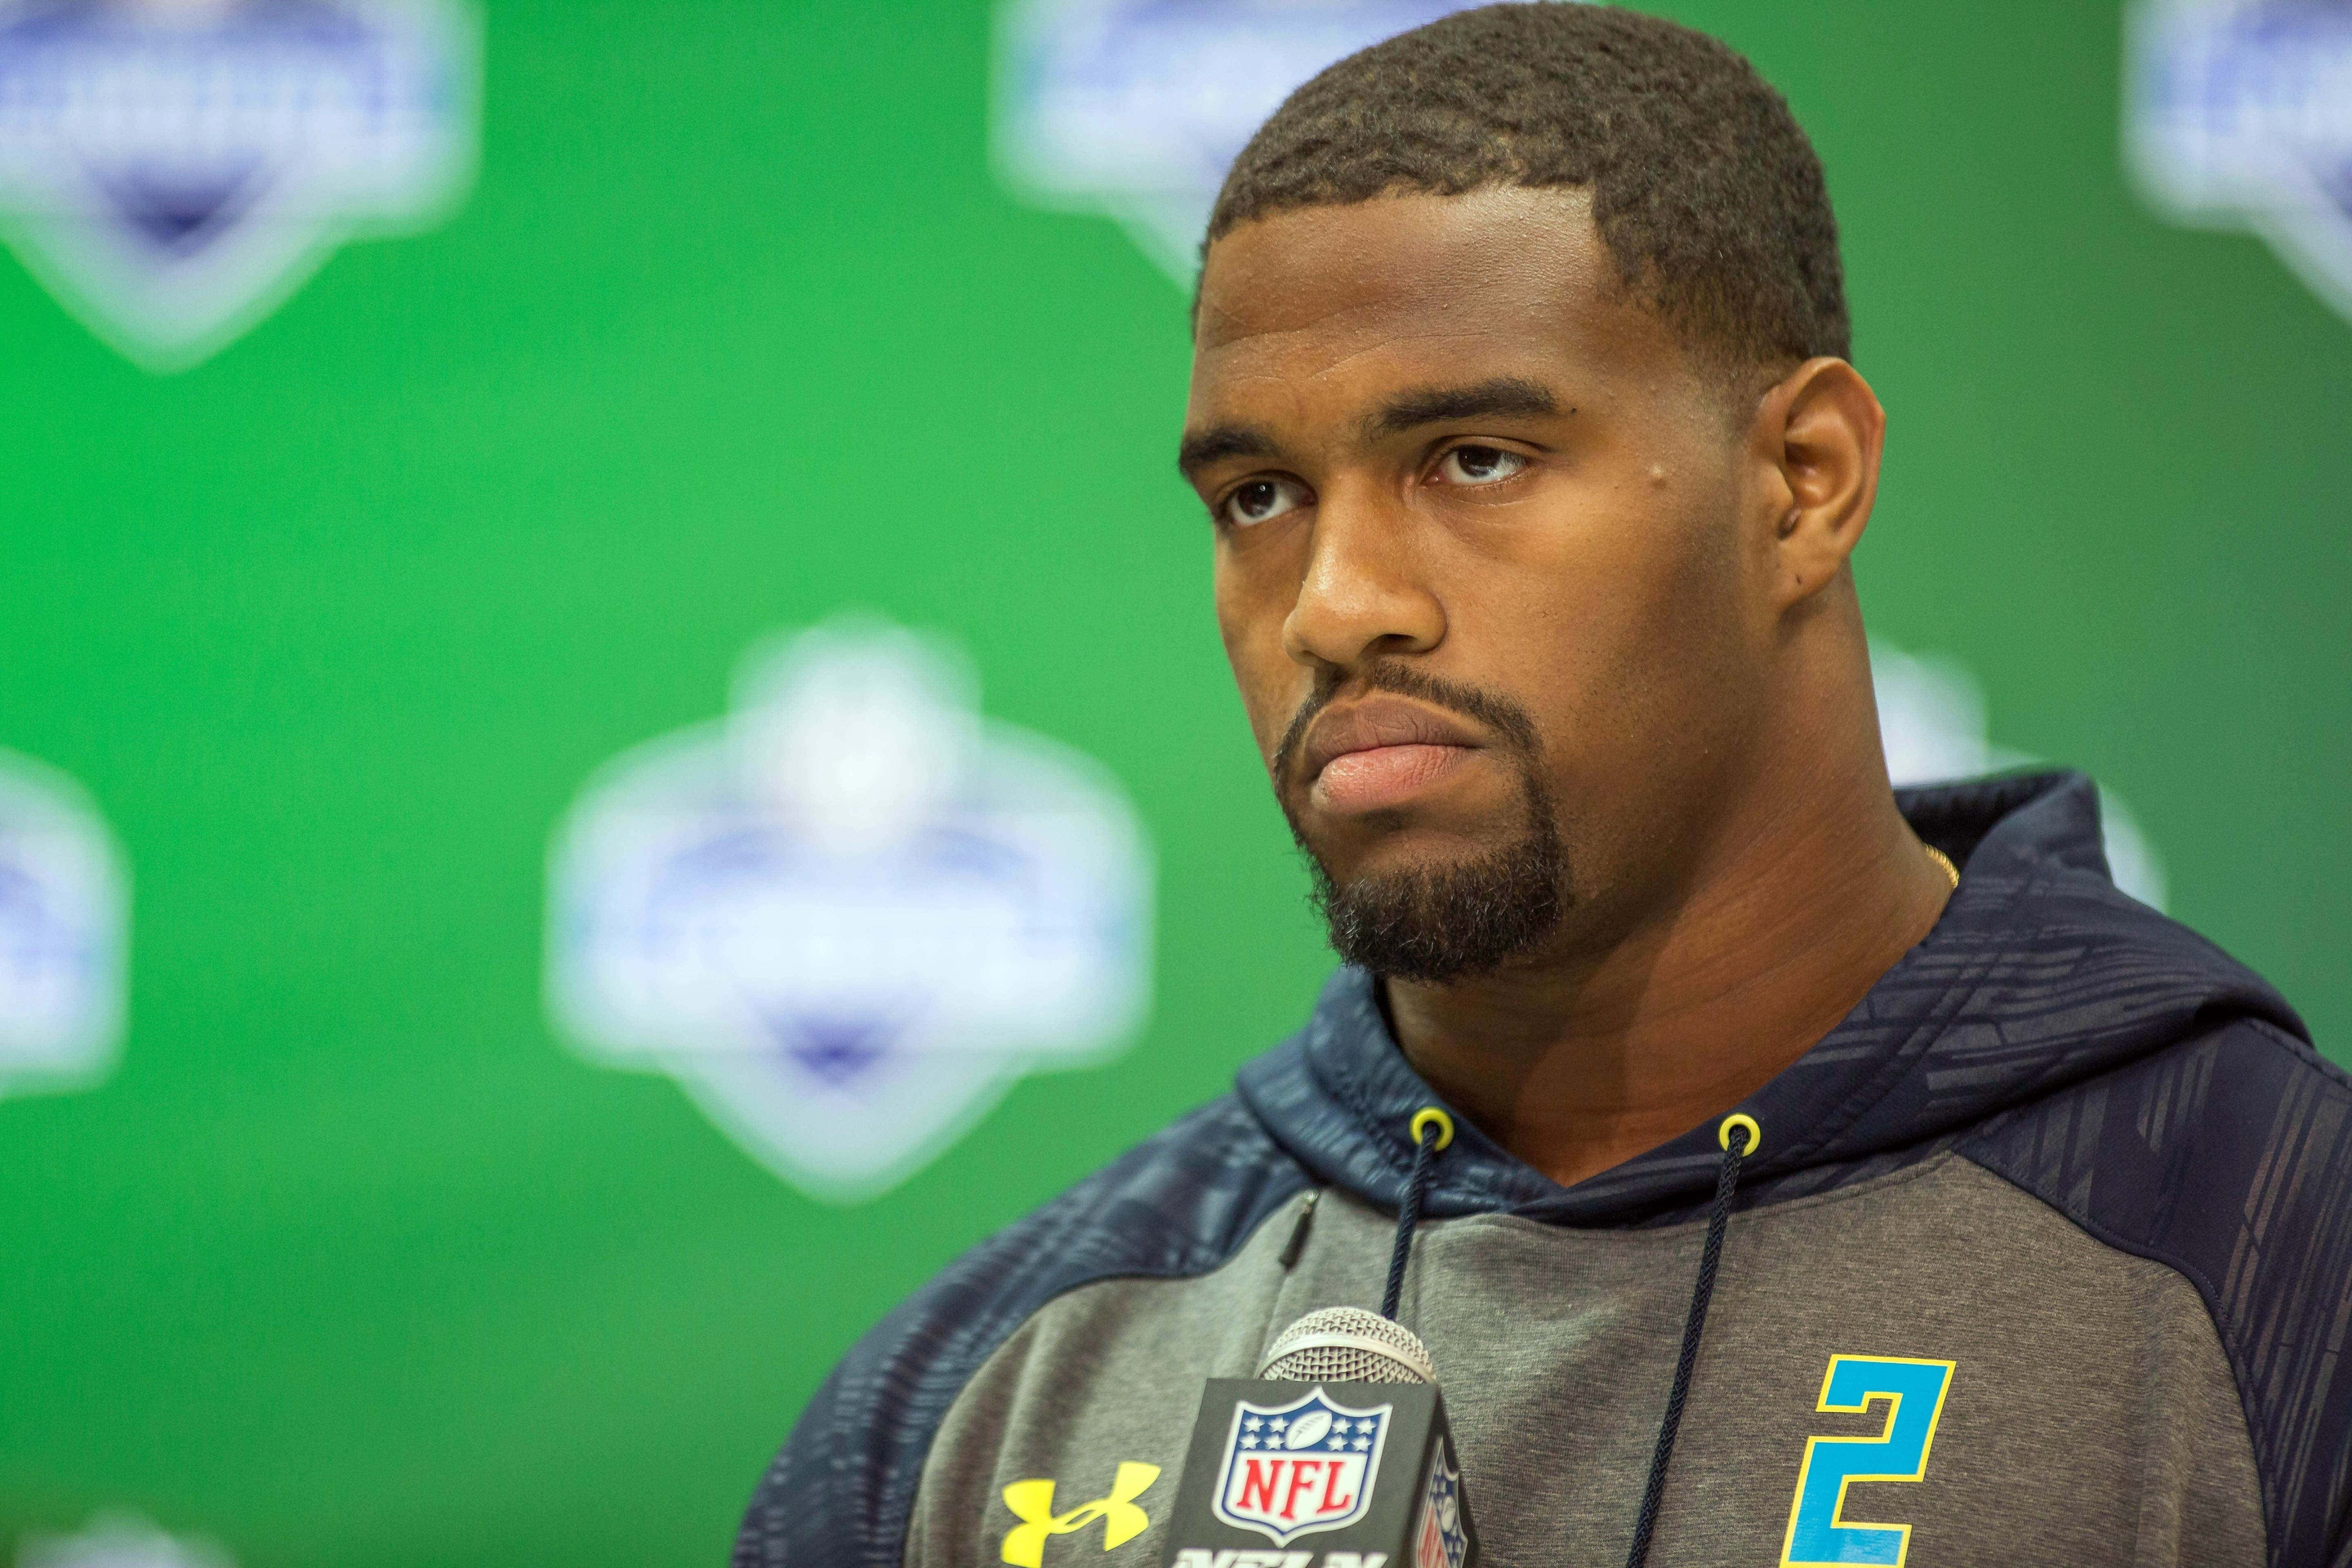 Mar 4, 2017; Indianapolis, IN, USA; Alabama defensive end Jonathan Allen speaks to the media during the 2017 combine at Indiana Convention Center. Mandatory Credit: Trevor Ruszkowski-USA TODAY Sports